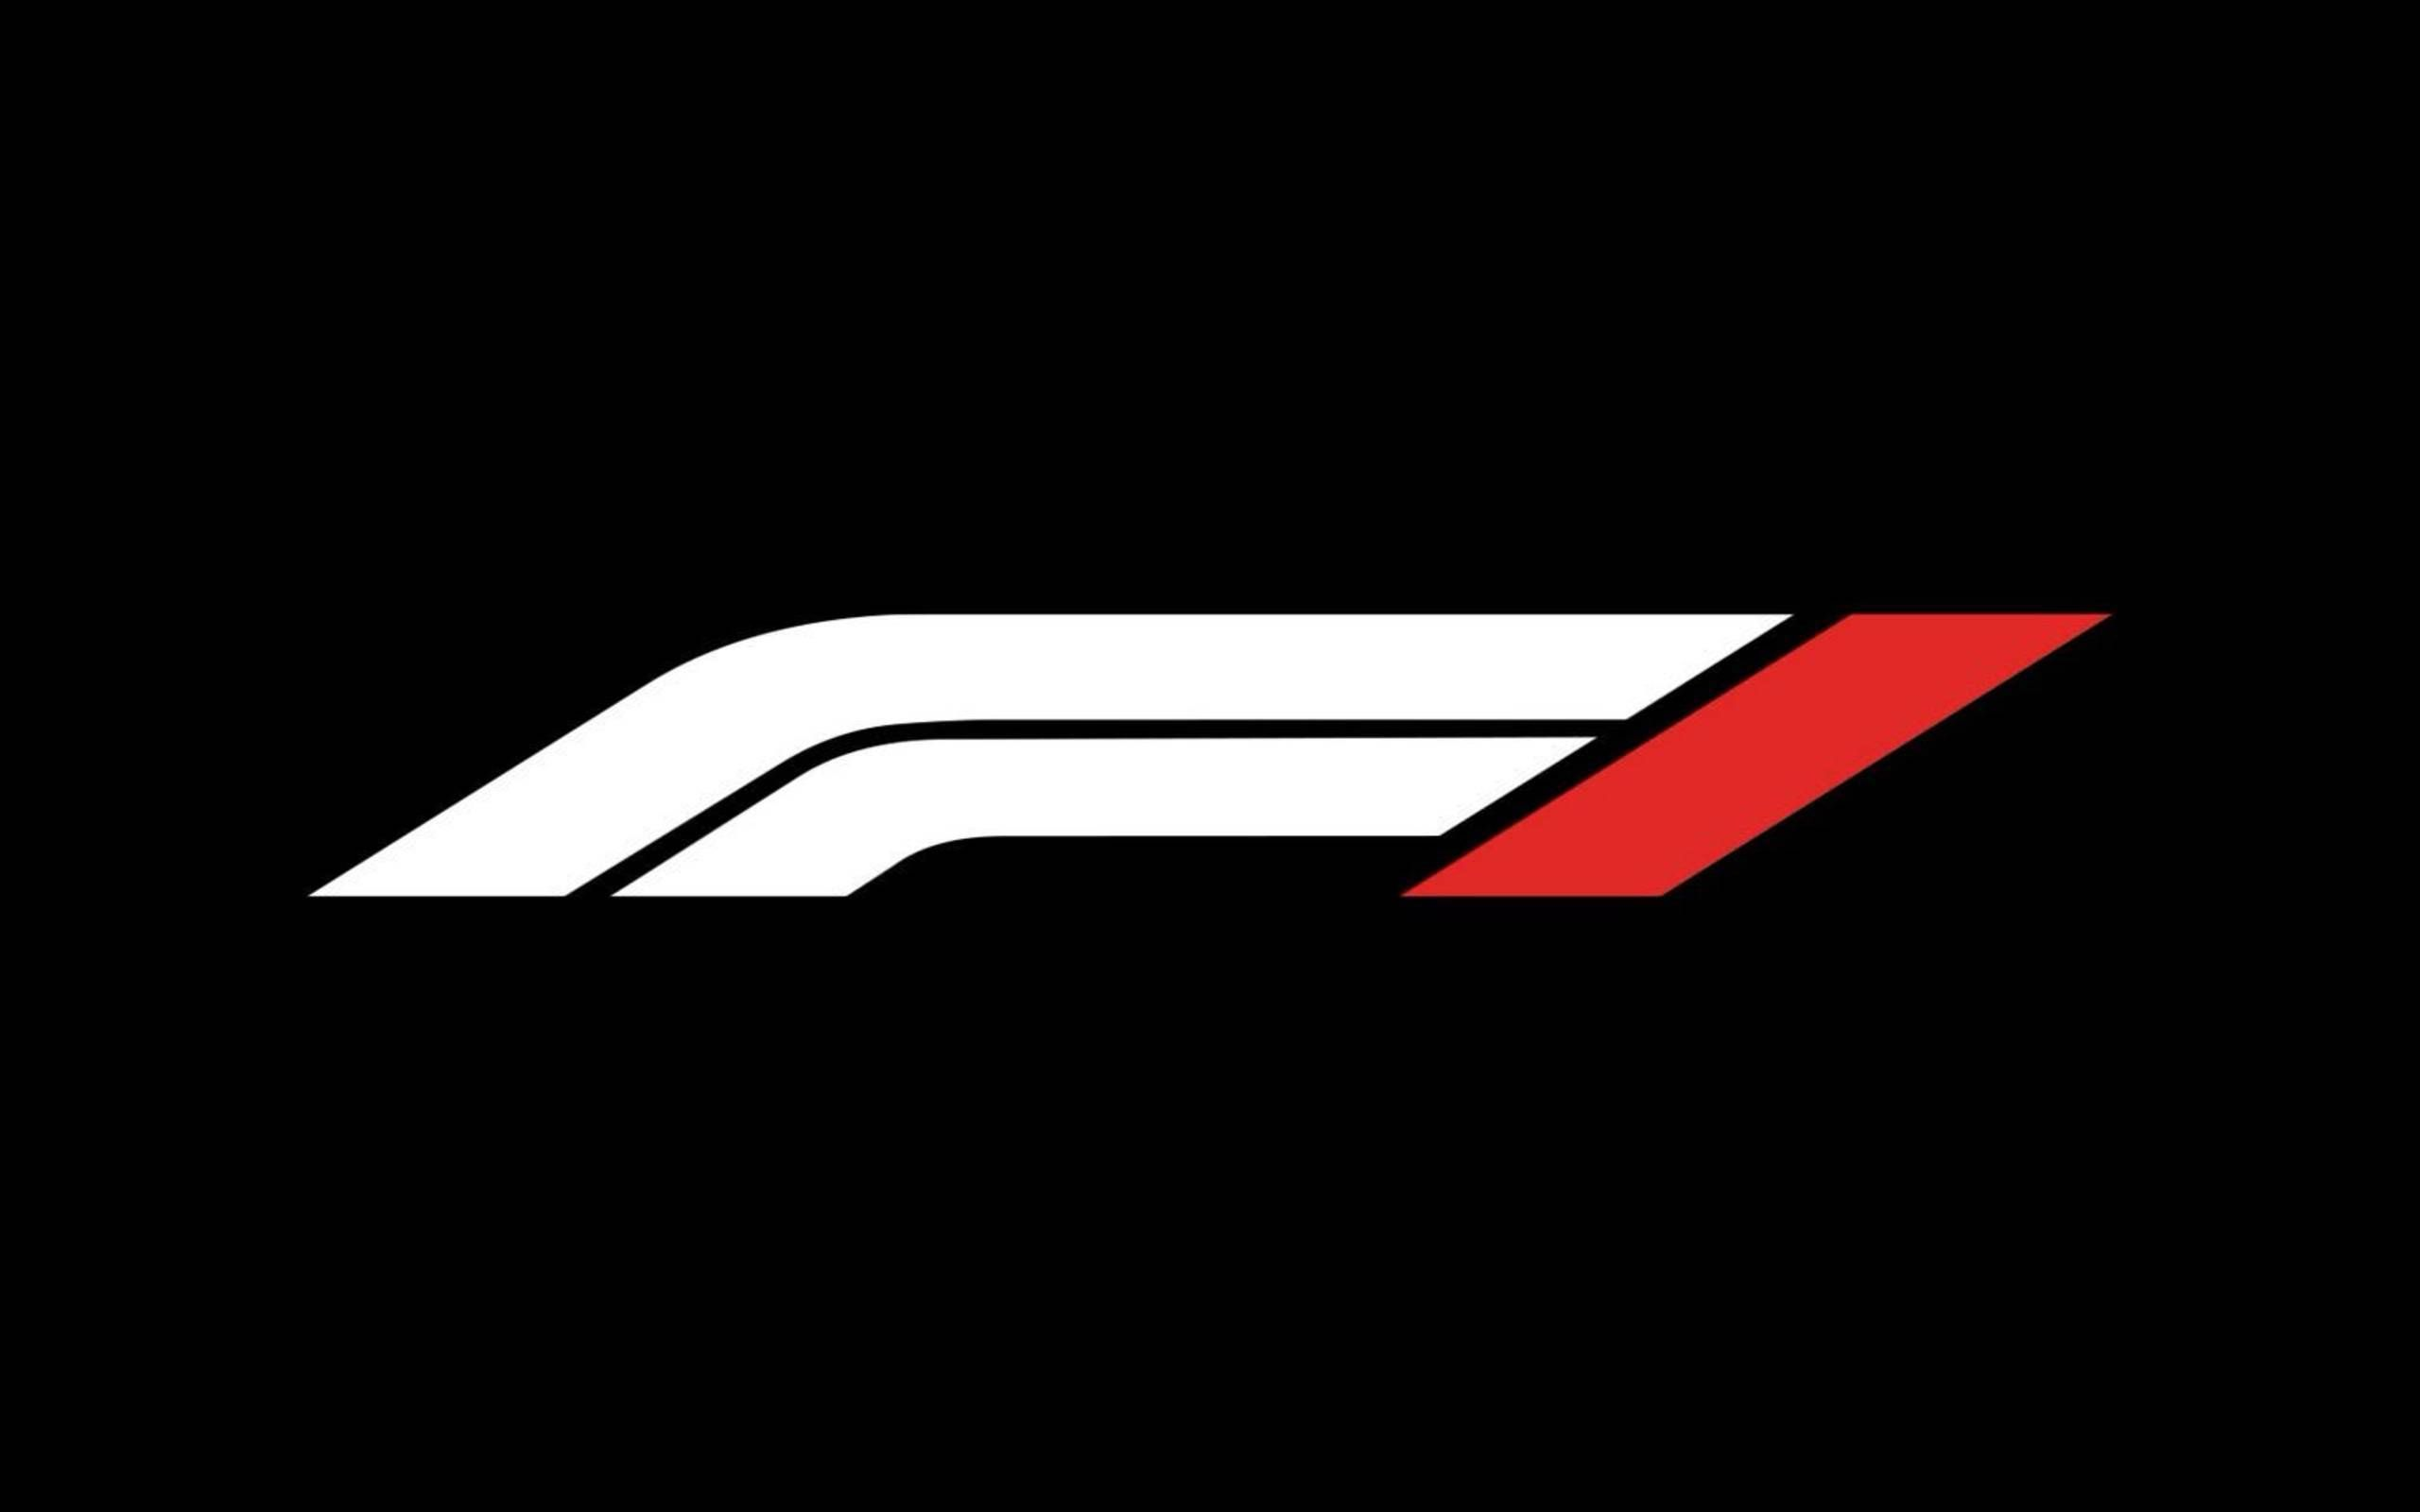 Report: New F1 logo may violate 3M copyright